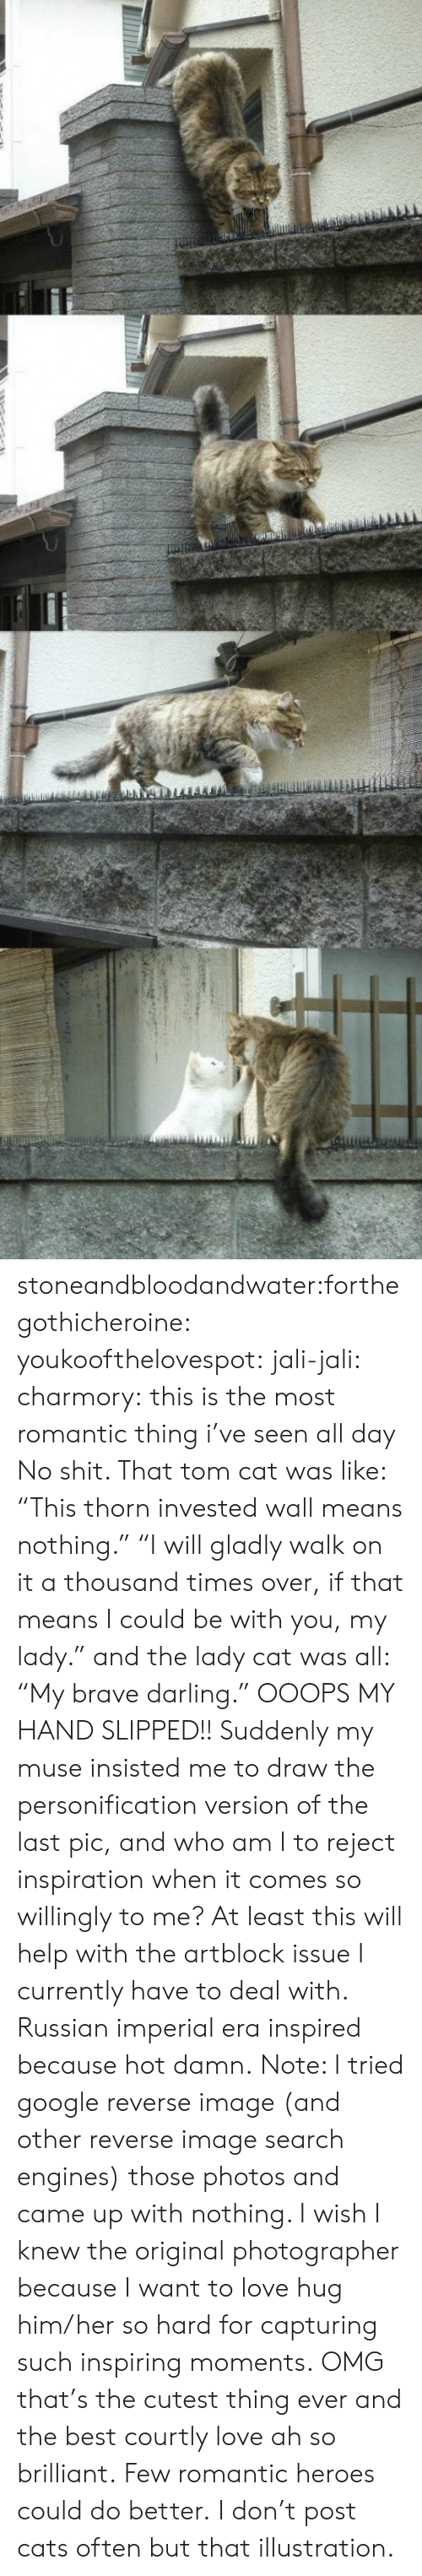 """tom cat: stoneandbloodandwater:forthegothicheroine:  youkoofthelovespot:  jali-jali:  charmory:  this is the most romantic thing i've seen all day  No shit. That tom cat was like: """"This thorn invested wall means nothing."""" """"I will gladly walk on it a thousand times over, if that means I could be with you, my lady."""" and the lady cat was all: """"My brave darling."""" OOOPS MY HAND SLIPPED!! Suddenly my muse insisted me to draw the personification version of the last pic, and who am I to reject inspiration when it comes so willingly to me? At least this will help with the artblock issue I currently have to deal with. Russian imperial era inspired because hot damn. Note: I tried google reverse image (and other reverse image search engines) those photos and came up with nothing. I wish I knew the original photographer because I want to love hug him/her so hard for capturing such inspiring moments.  OMG that's the cutest thing ever and the best courtly love ah so brilliant.  Few romantic heroes could do better.  I don't post cats often butthat illustration."""